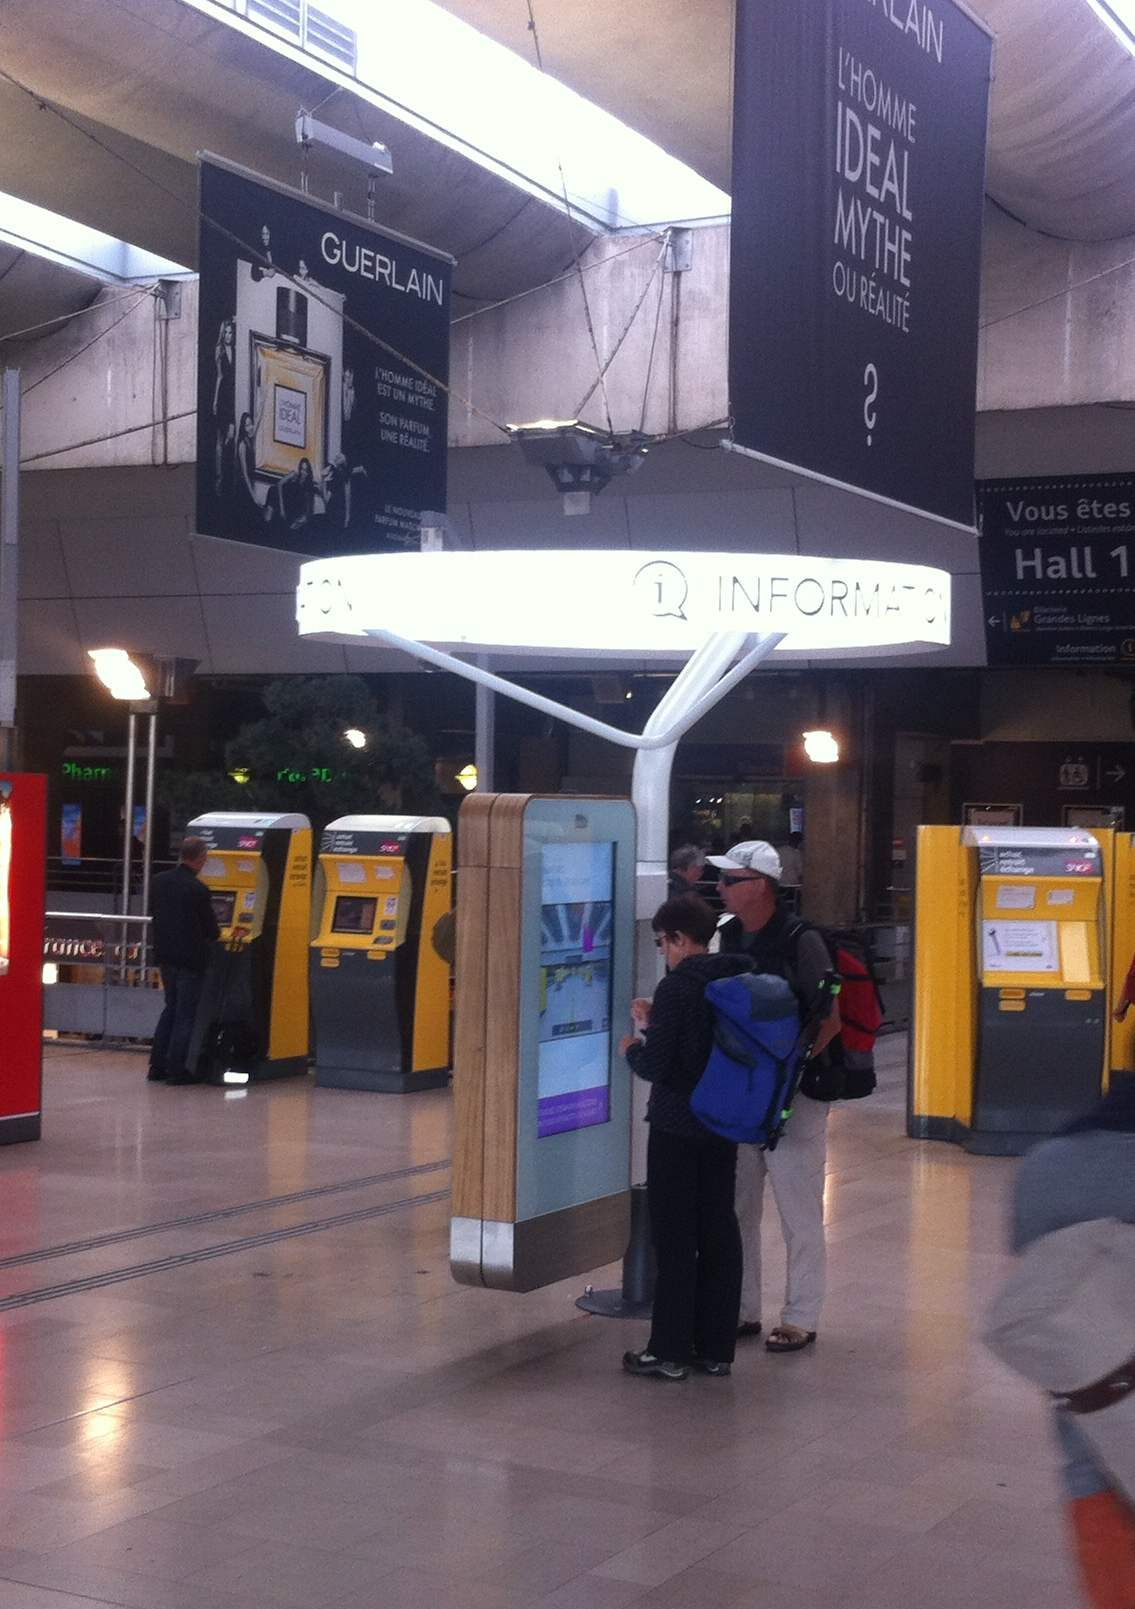 Outdoor Kiosk In Monparnasse Gare France 46 Lcd Using 8mm Glass With Wayfinding Content For Train Departures And Arrivals In Wayfinding Outdoor Departures